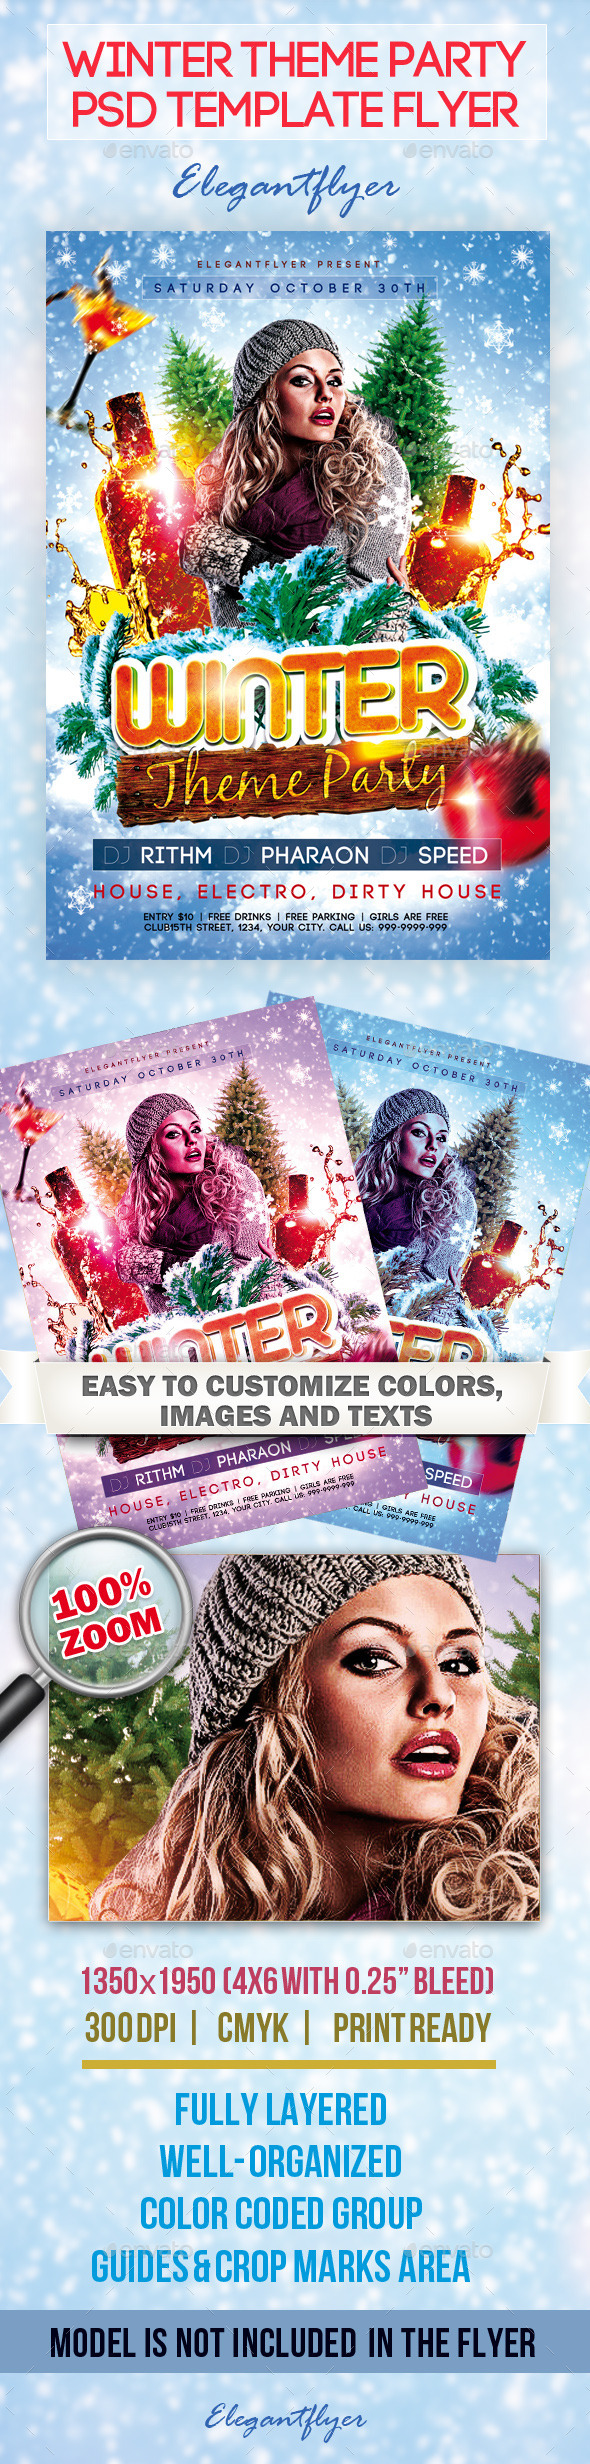 Winter Theme Party Flyer PSD Template